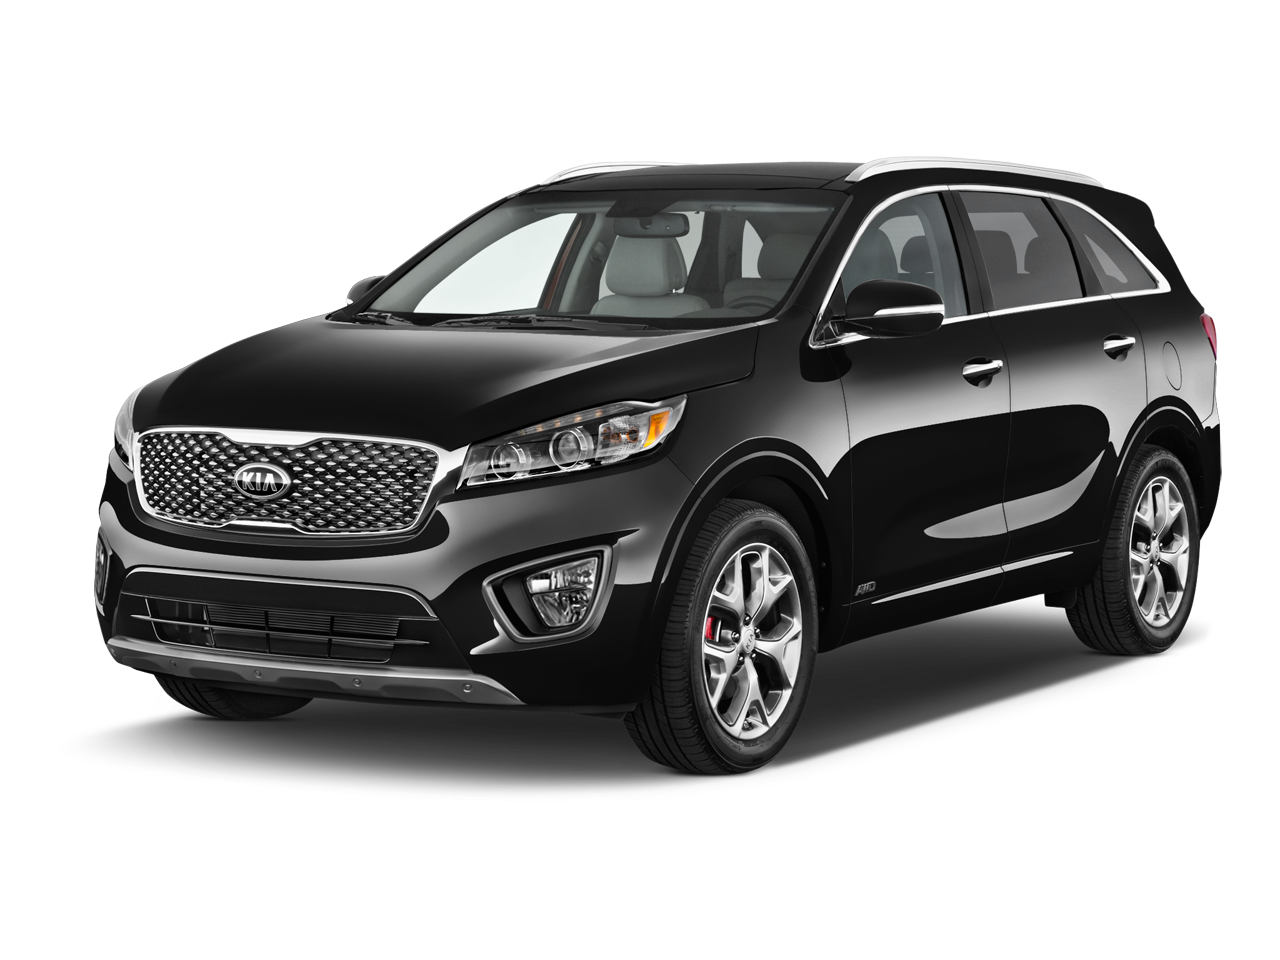 new 2017 kia sorento limited v6 near pomona ca allstar kia of pomona. Black Bedroom Furniture Sets. Home Design Ideas